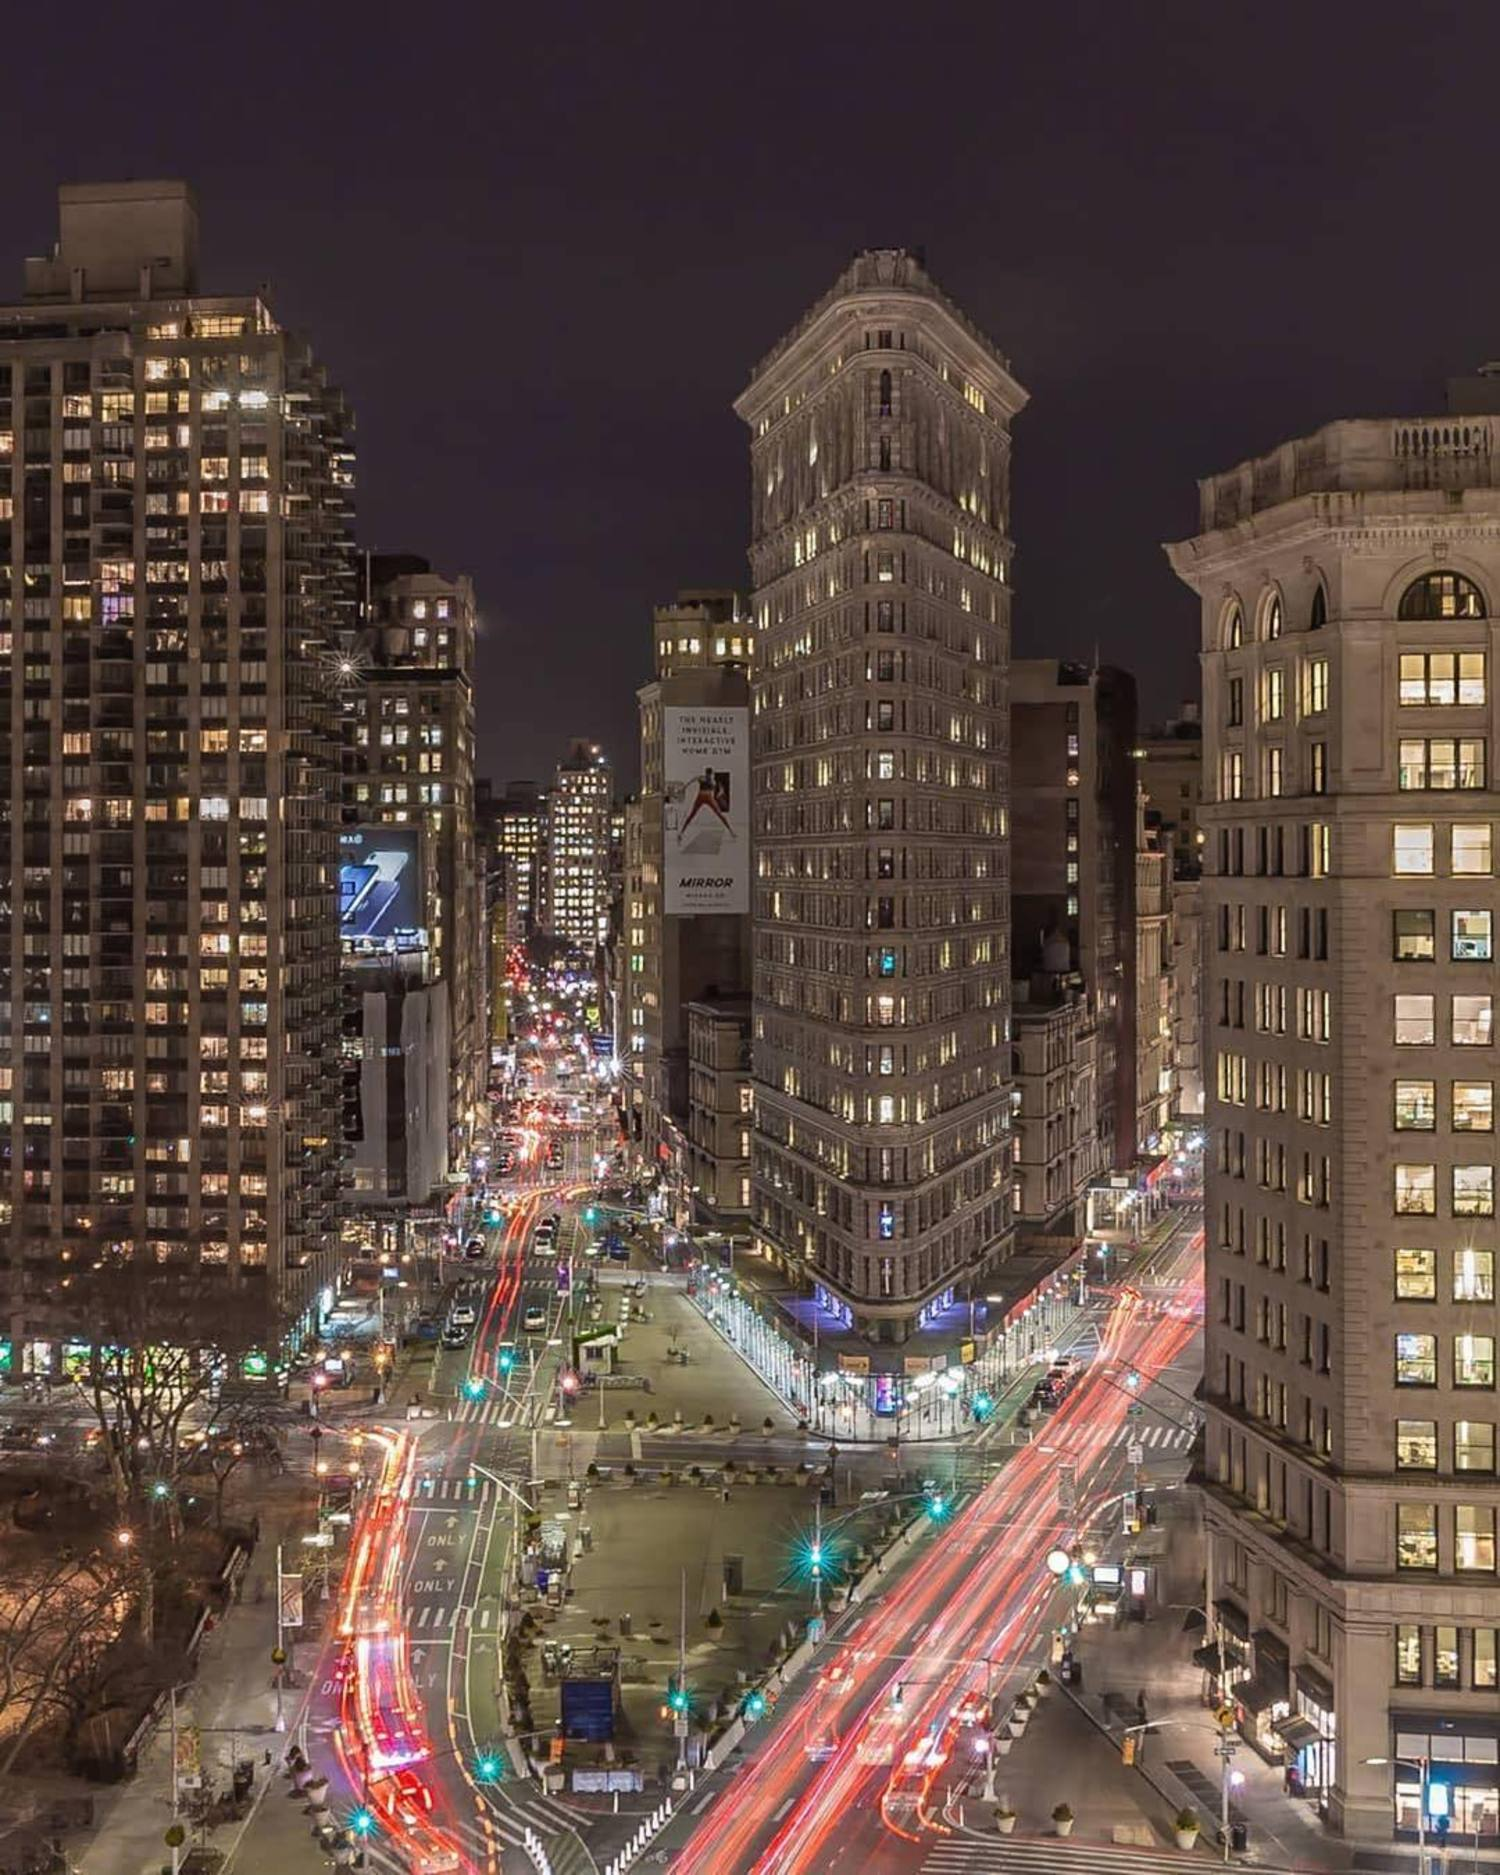 Flatiron District, Manhattan. Photo via @killahwave #viewingnyc #nyc #newyorkcity #newyork #flatironbuilding